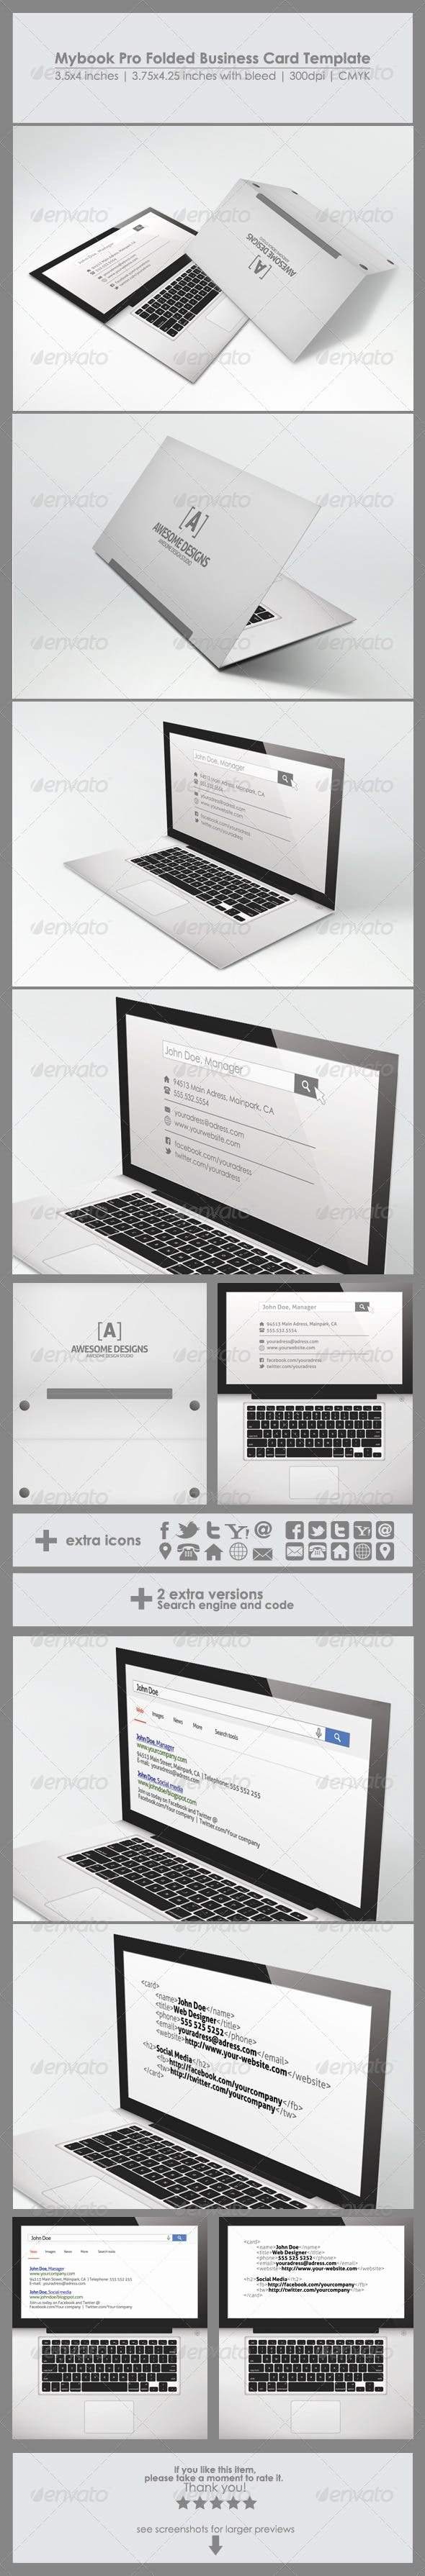 Folding Business Card Templates Luxury Mybook Pro Folded Business Card Template by Zeppelin Graphics